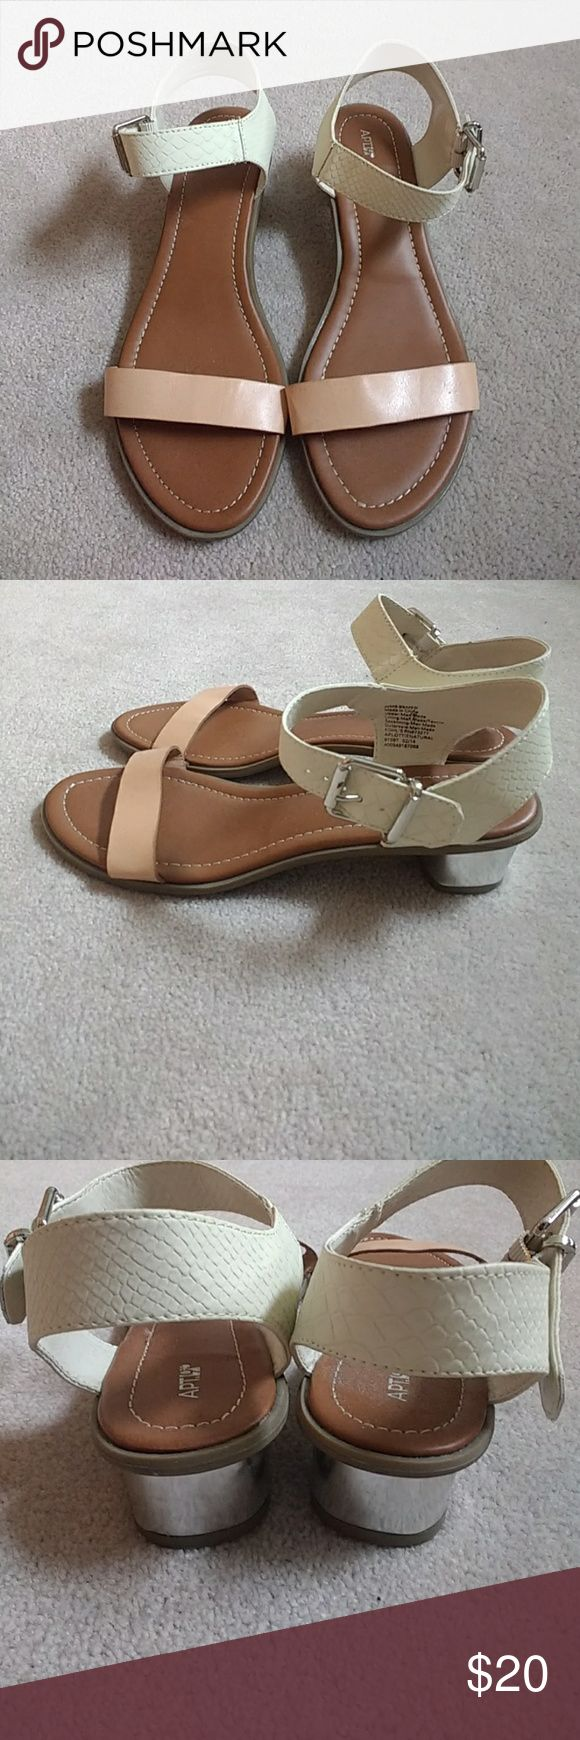 """NEW Apt. 9 Two Tone Strappy Heeled Sandals Never worn! Features a white textured top strap and a smooth faux leather tan colored strap at bottom. Heel is silver for a trendy touch and measures 1.5"""". Apt.9 Shoes Sandals"""